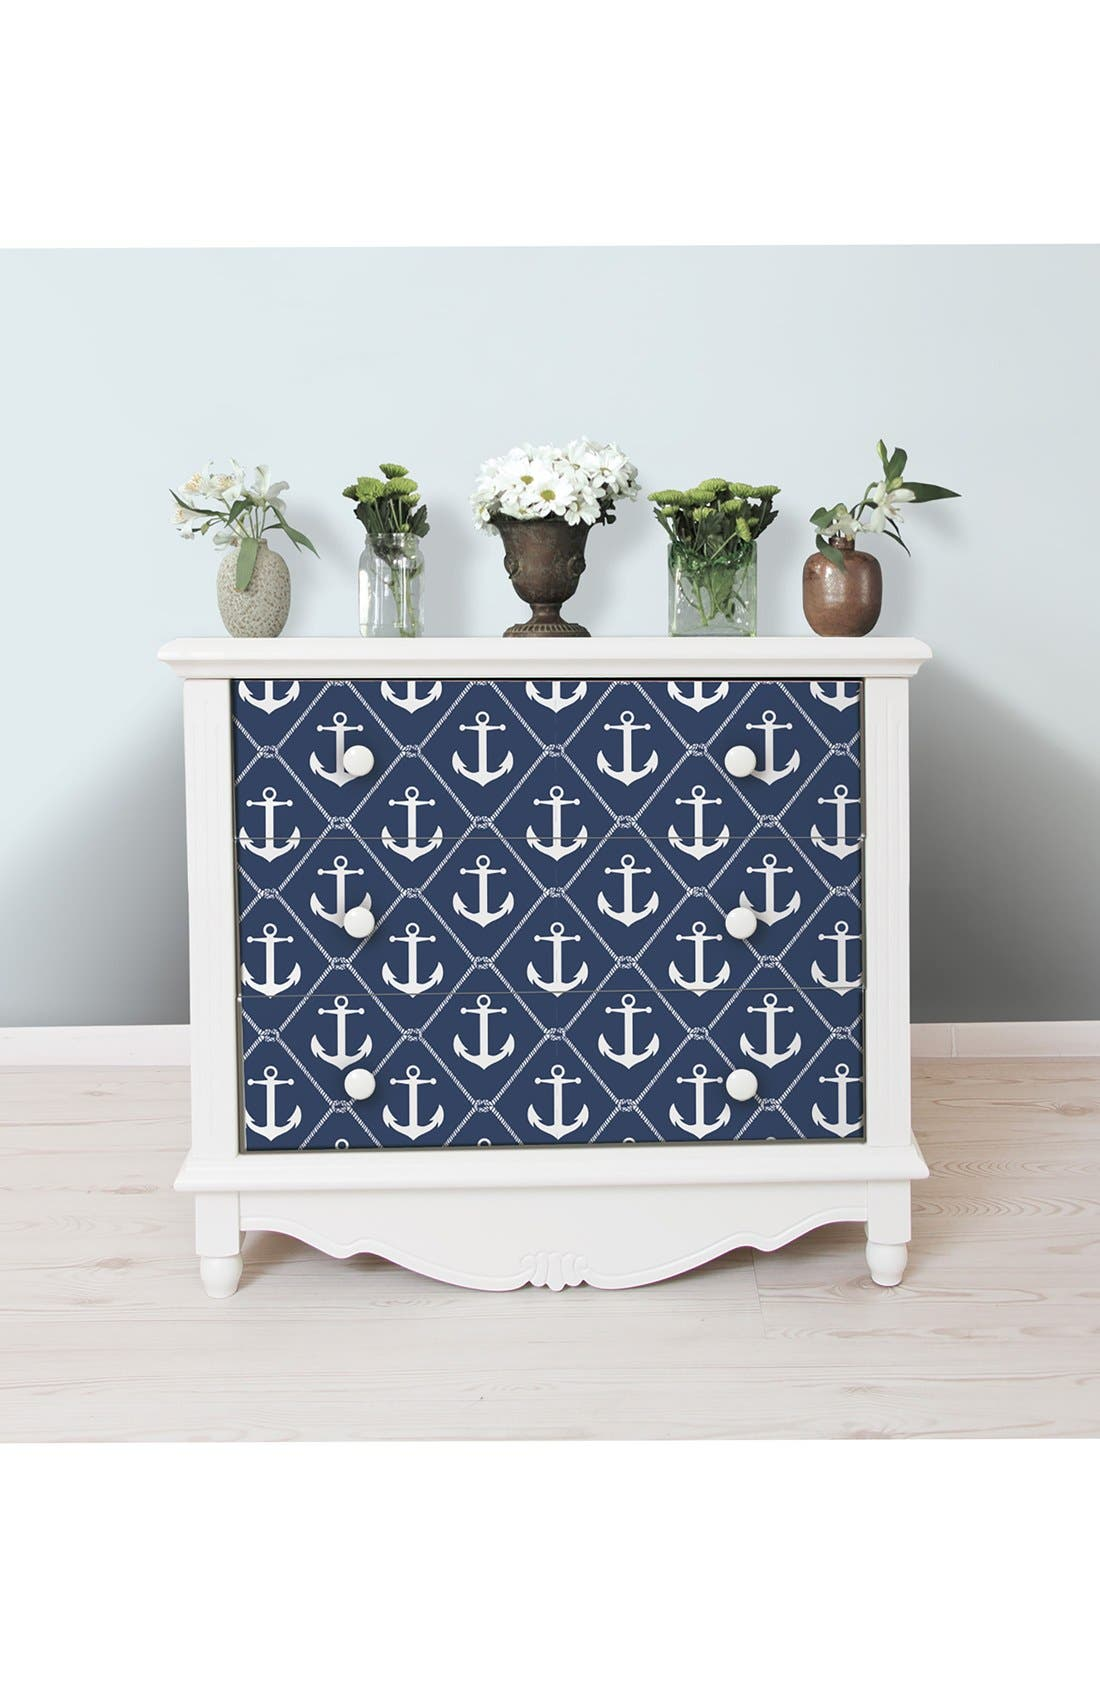 'Set Sail'  Peel & Stick Vinyl Wallpaper,                             Alternate thumbnail 2, color,                             Blue - Set Sail